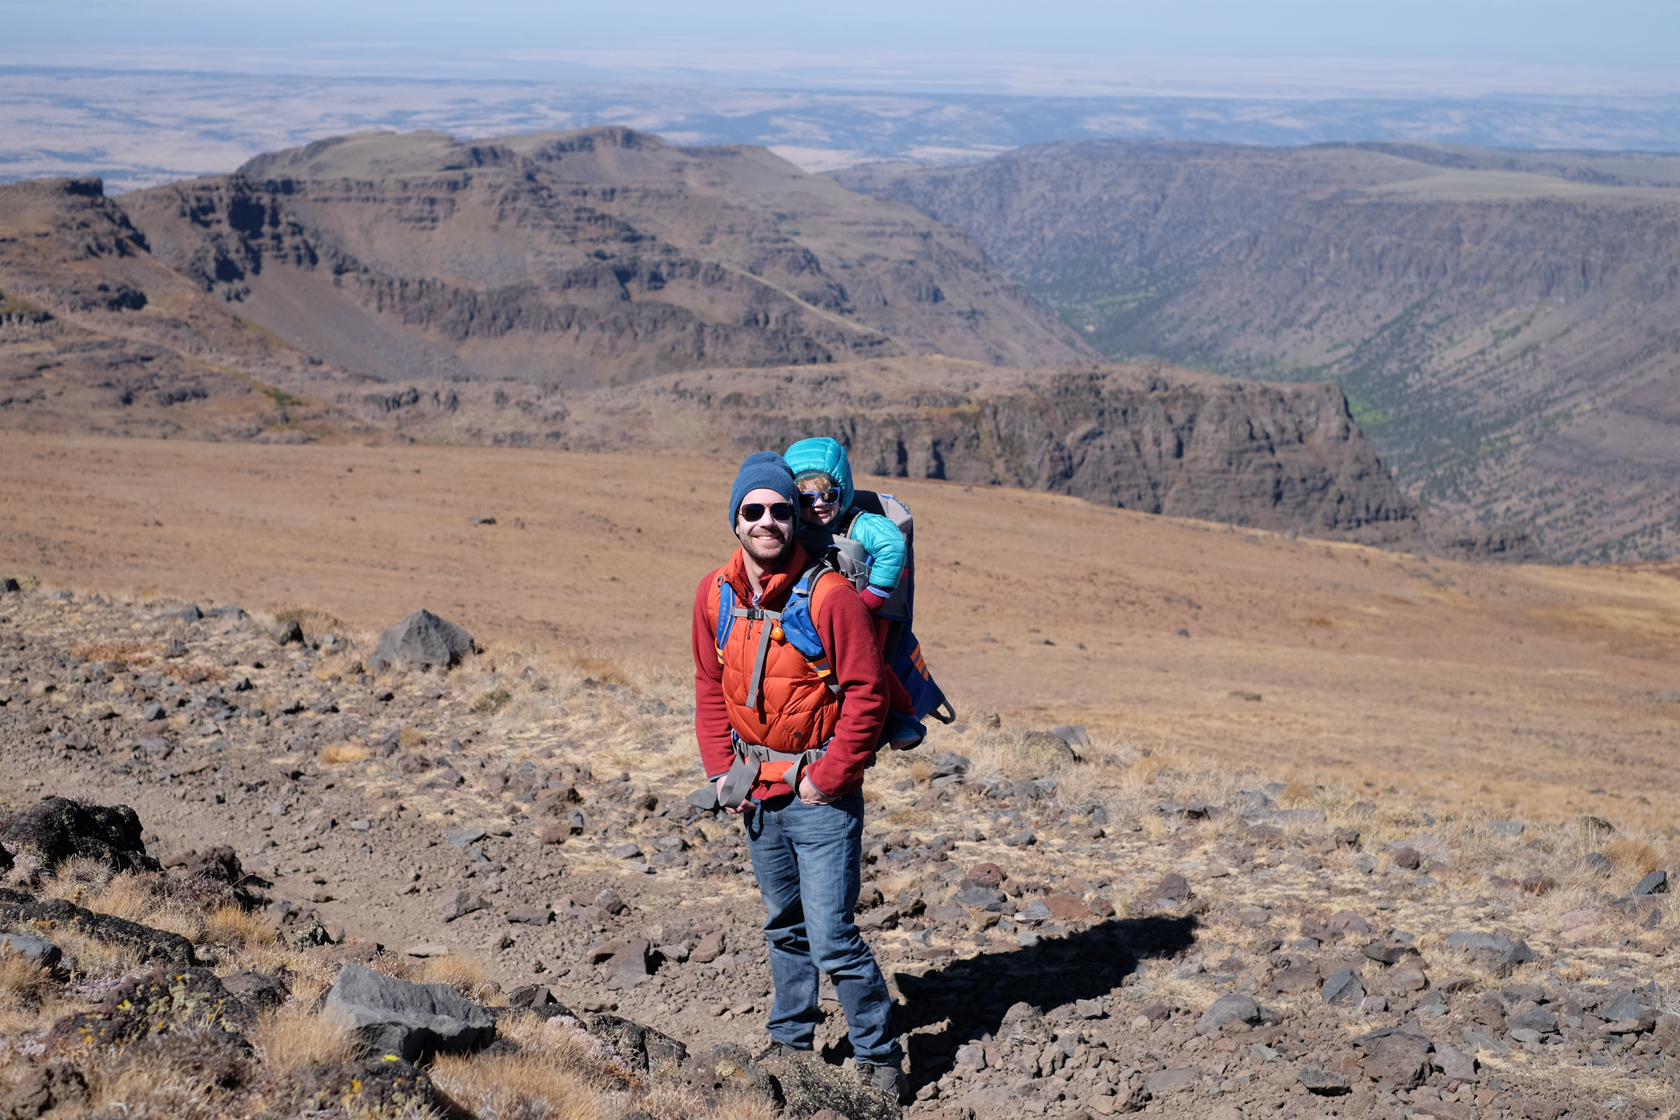 We drove up to the summit of Steens Mountain. It was windier than hell, and cold too, but once we hiked down into one of the nearby canyons it was much more pleasant.